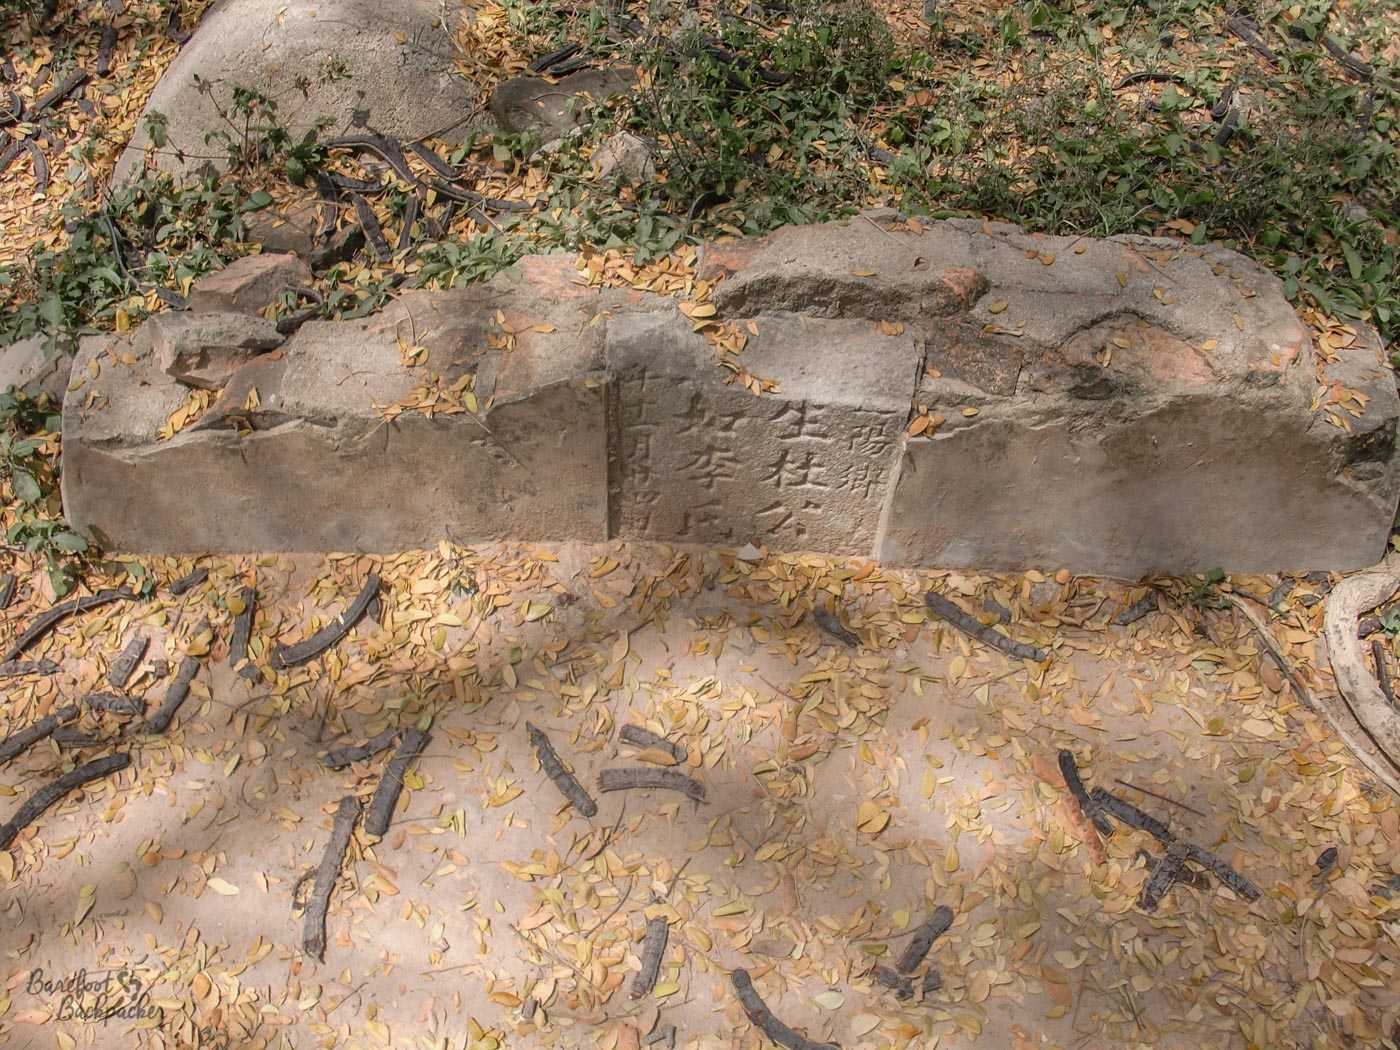 The remains of a Chinese grave. It's been broken off not far from the ground, so only a small selection of Chinese characters remain visible.